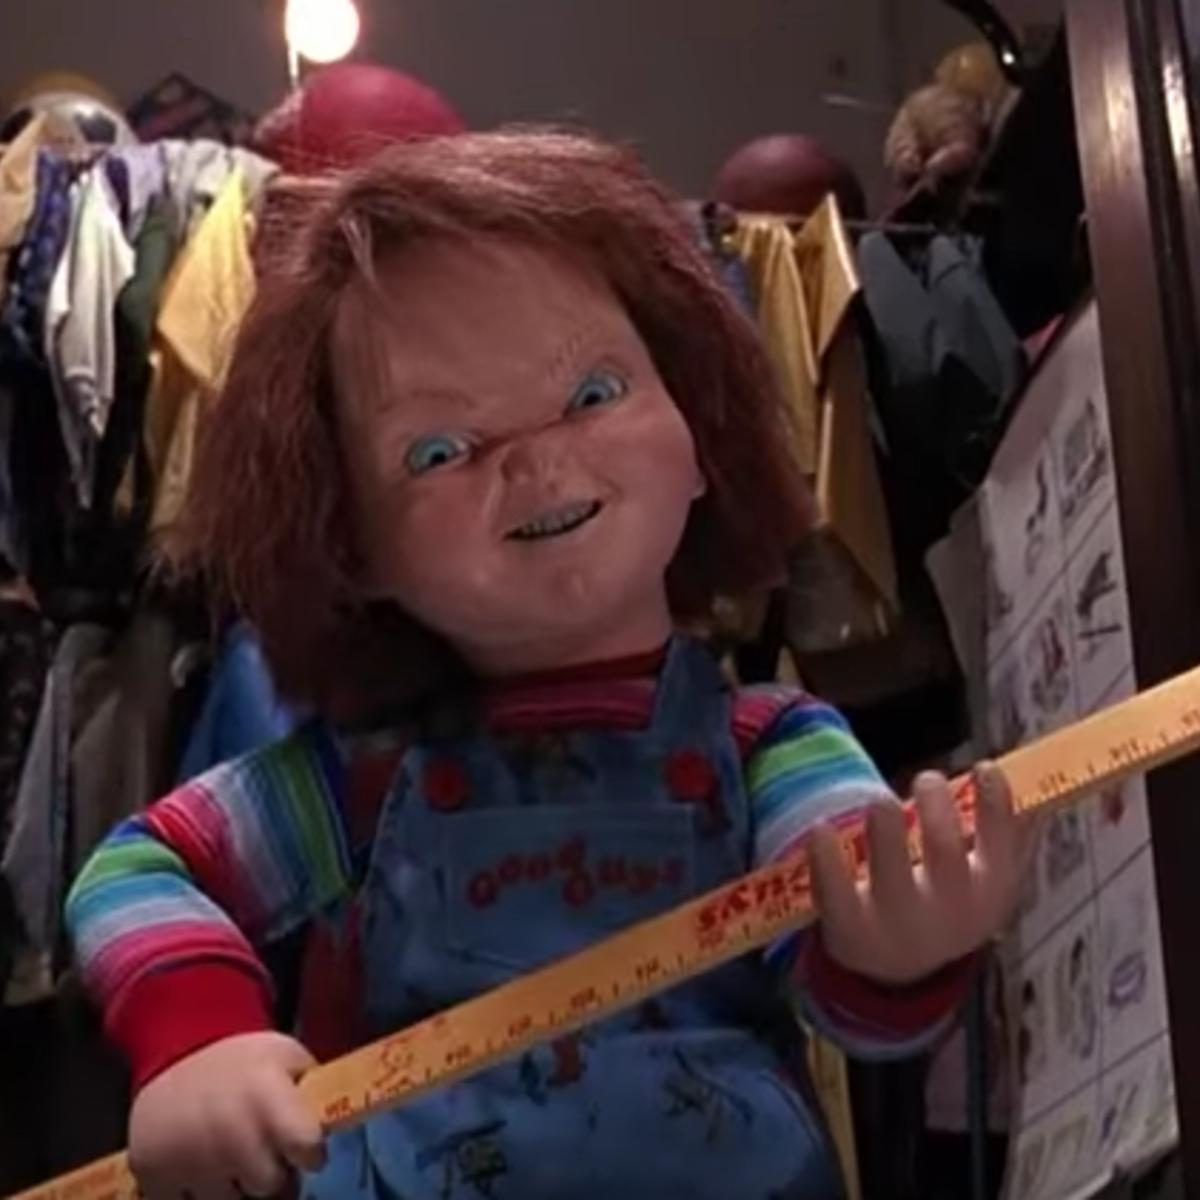 The Demented Good Guys Doll Returns In New Teaser For Cult Of Chucky